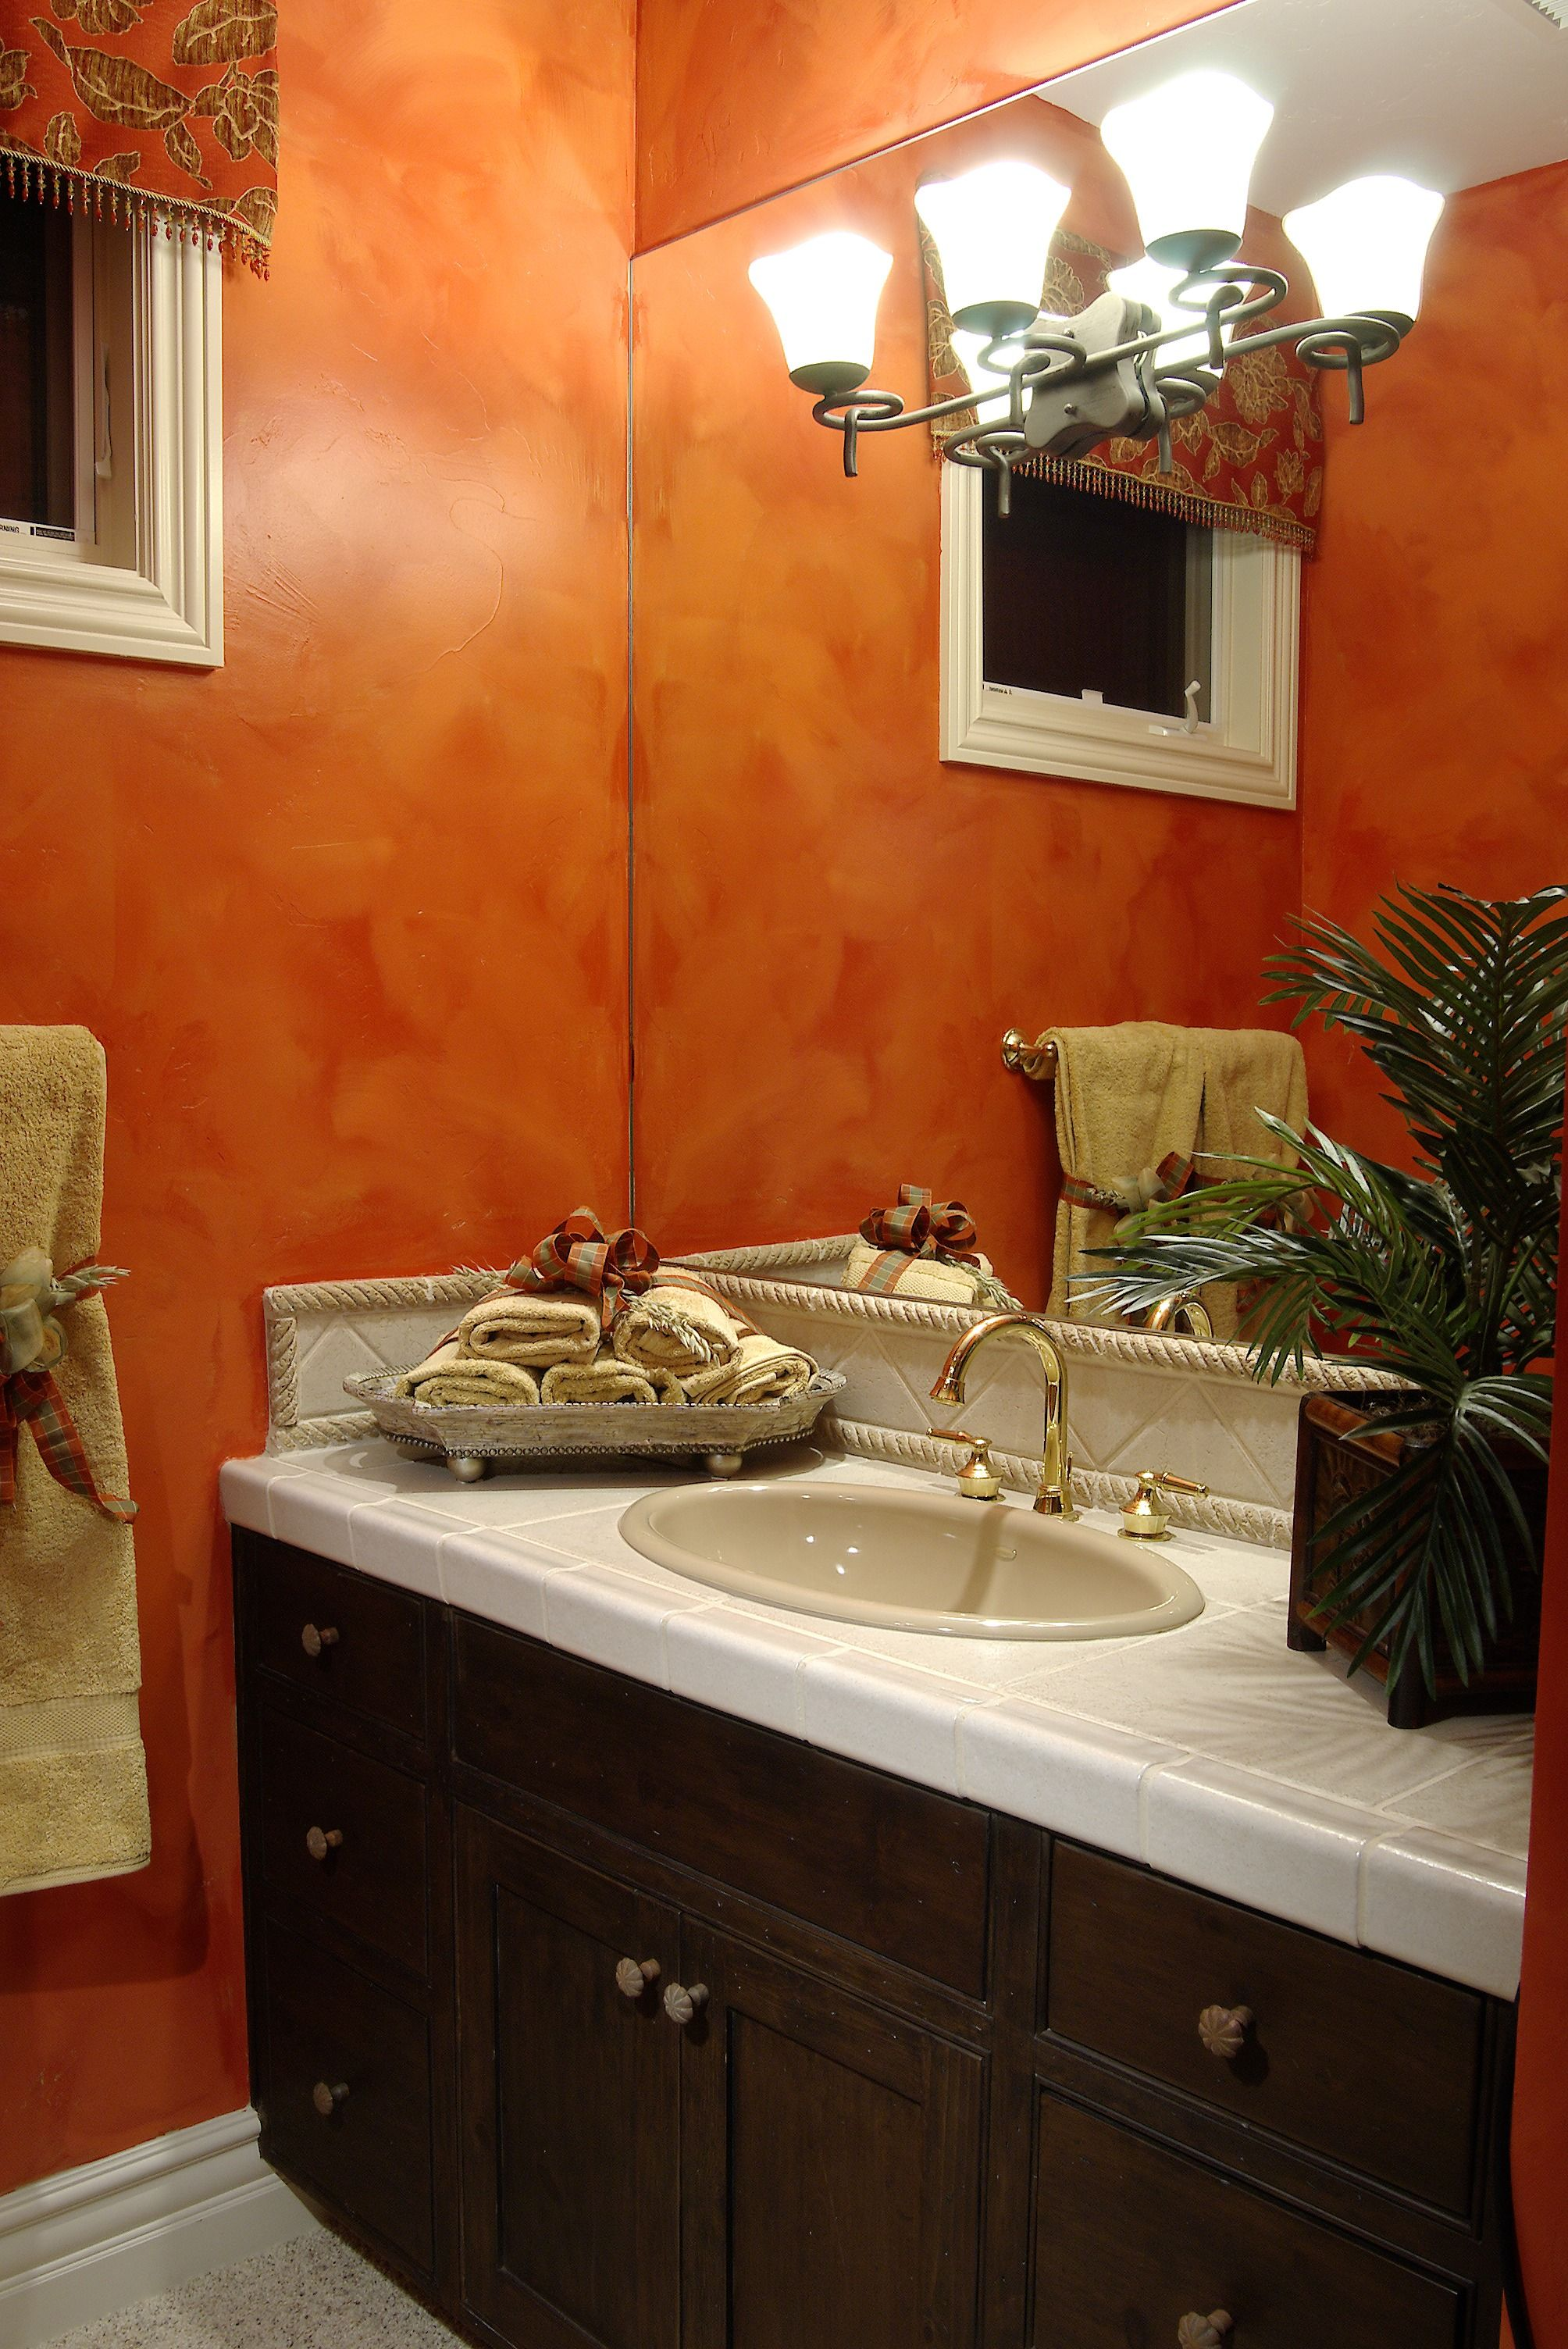 DIY Bathroom Remodel Ideas That Make A Difference Orange - How to remodel your own bathroom